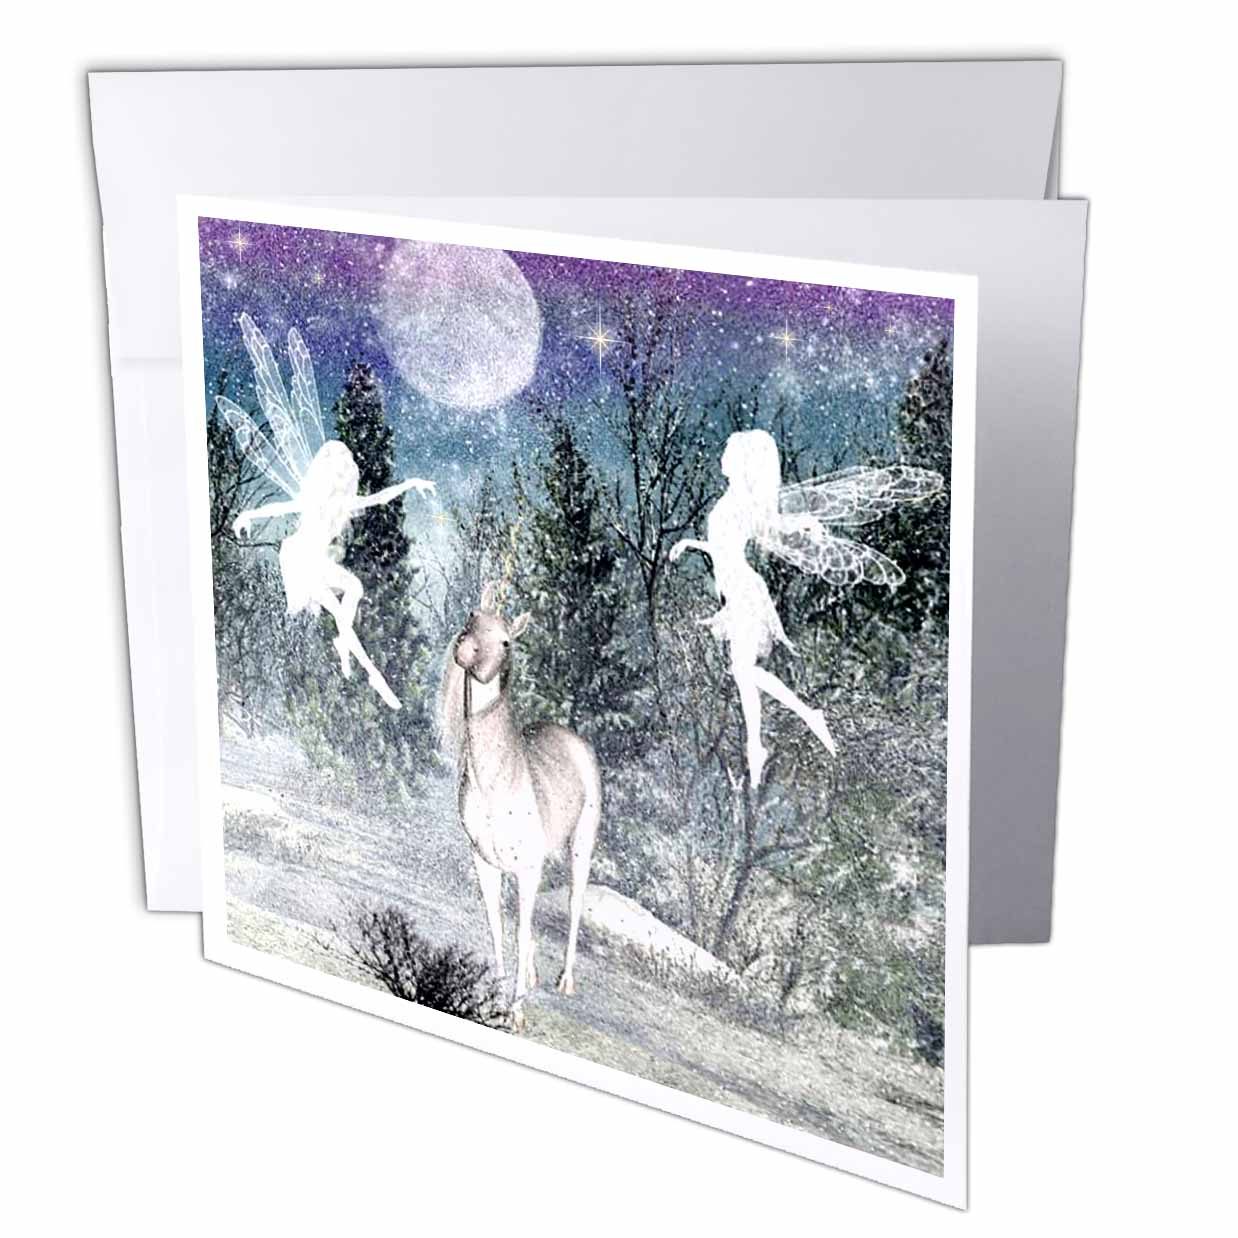 3dRose Fairies And Unicorn In The Snow, Greeting Card, 6 x 6 inches, single